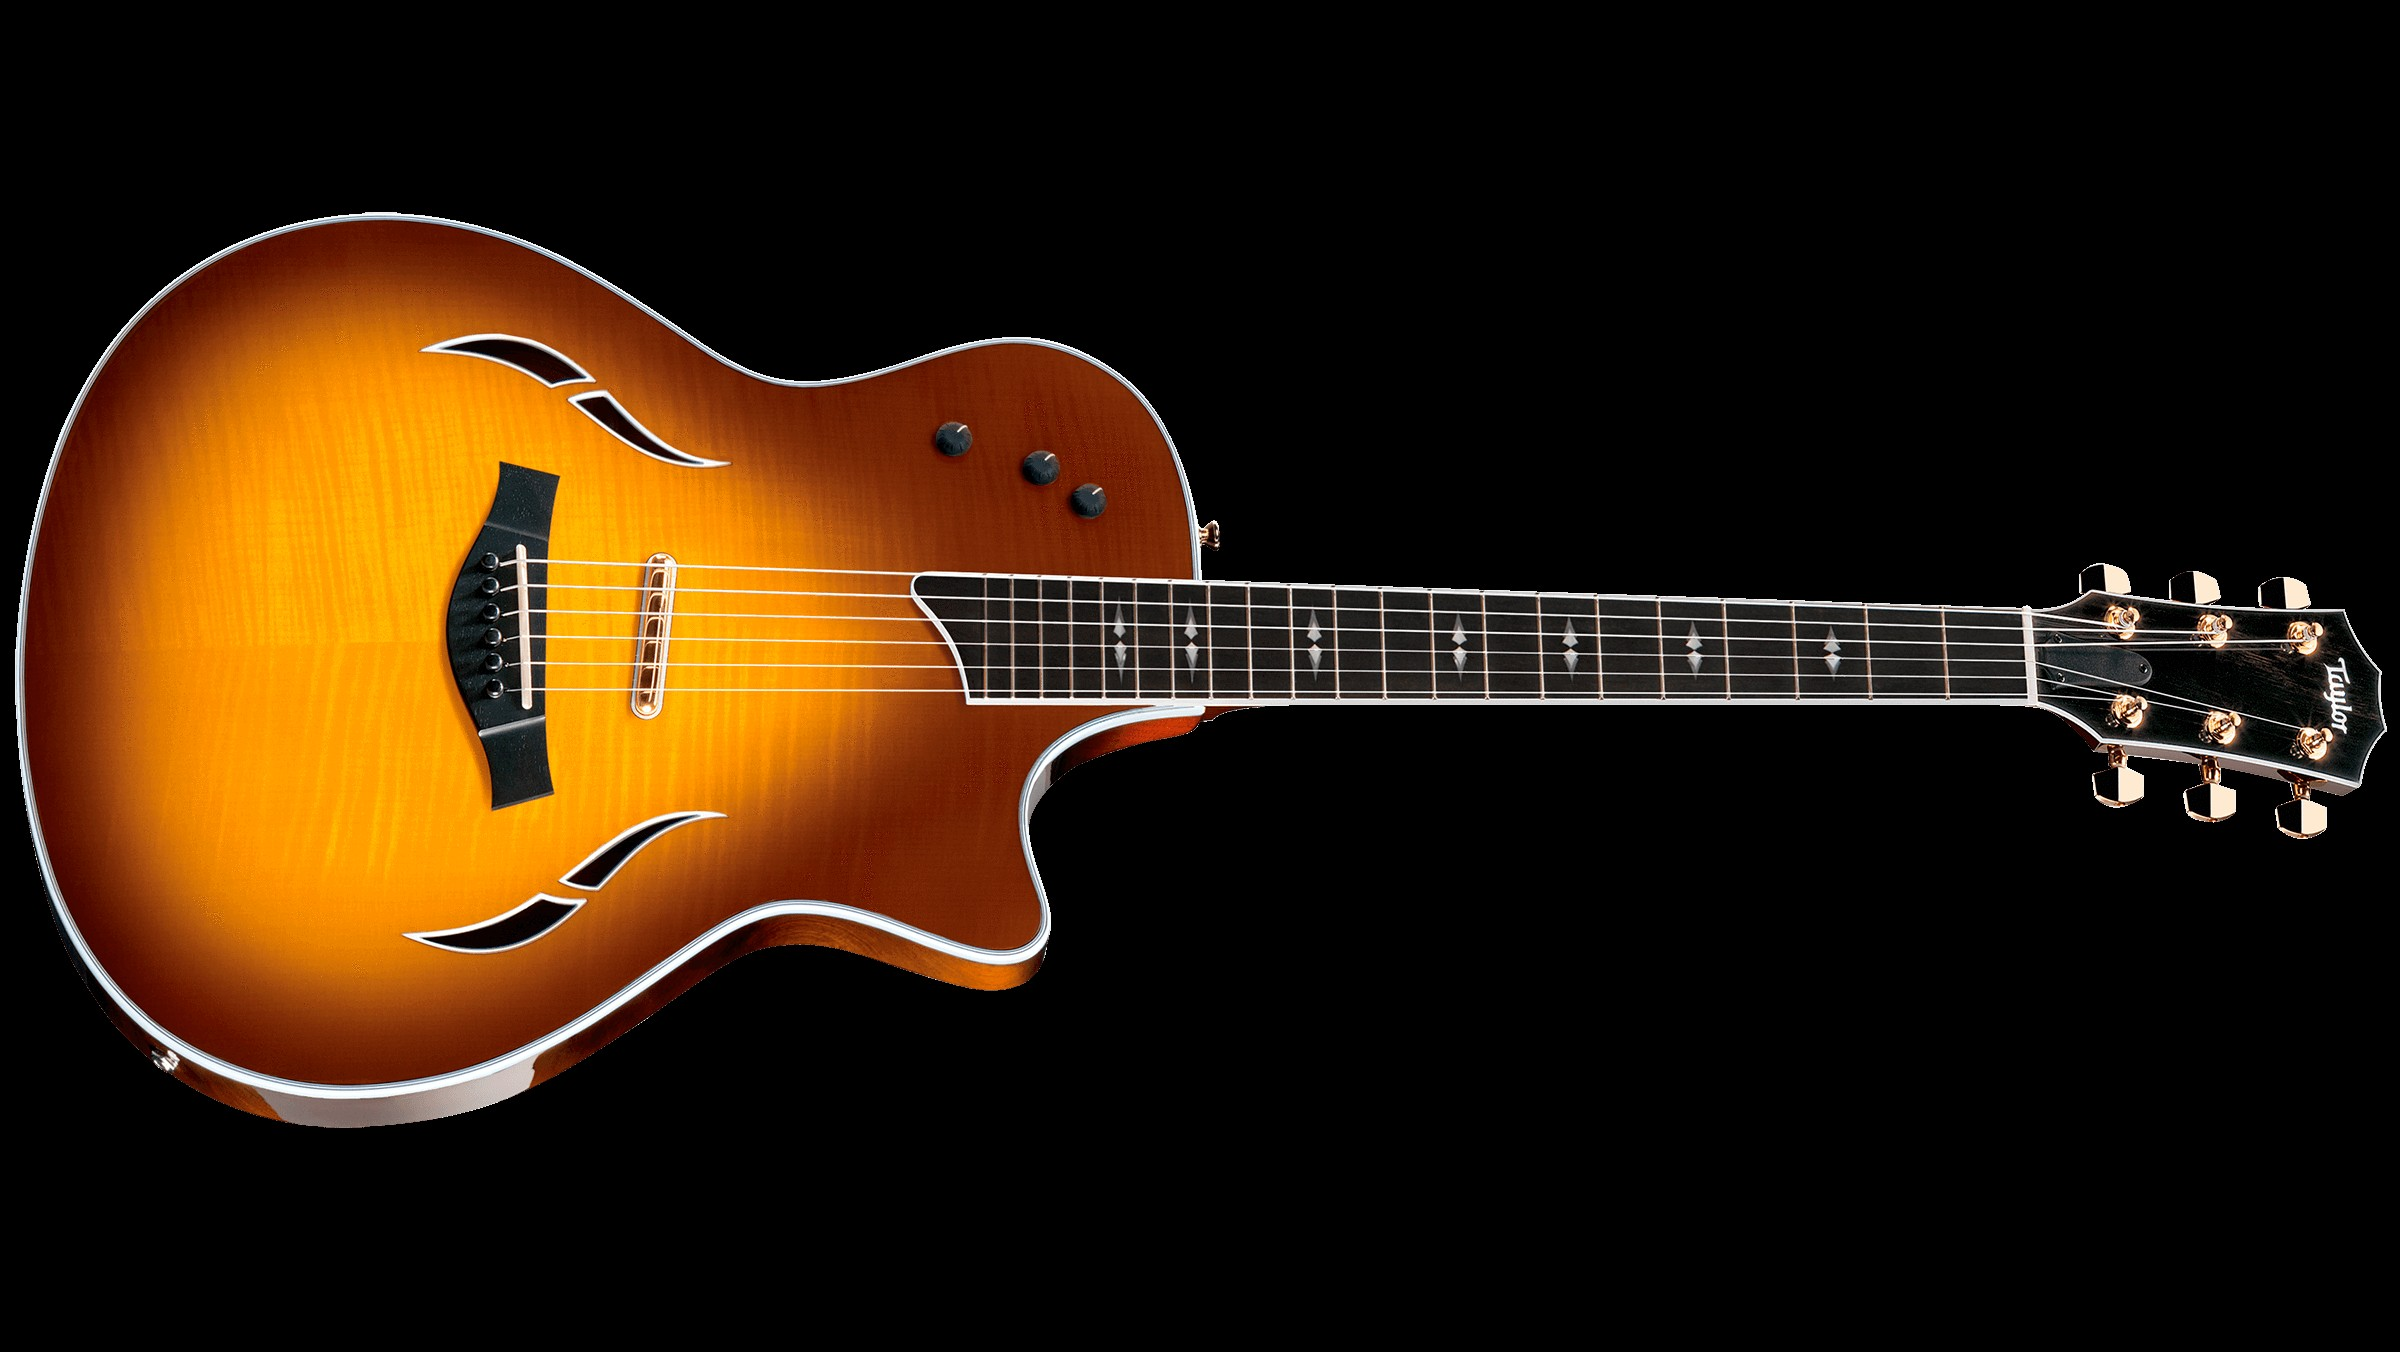 Taylor T5 C1 Lindsey also has been known to play a Taylor T5 C1